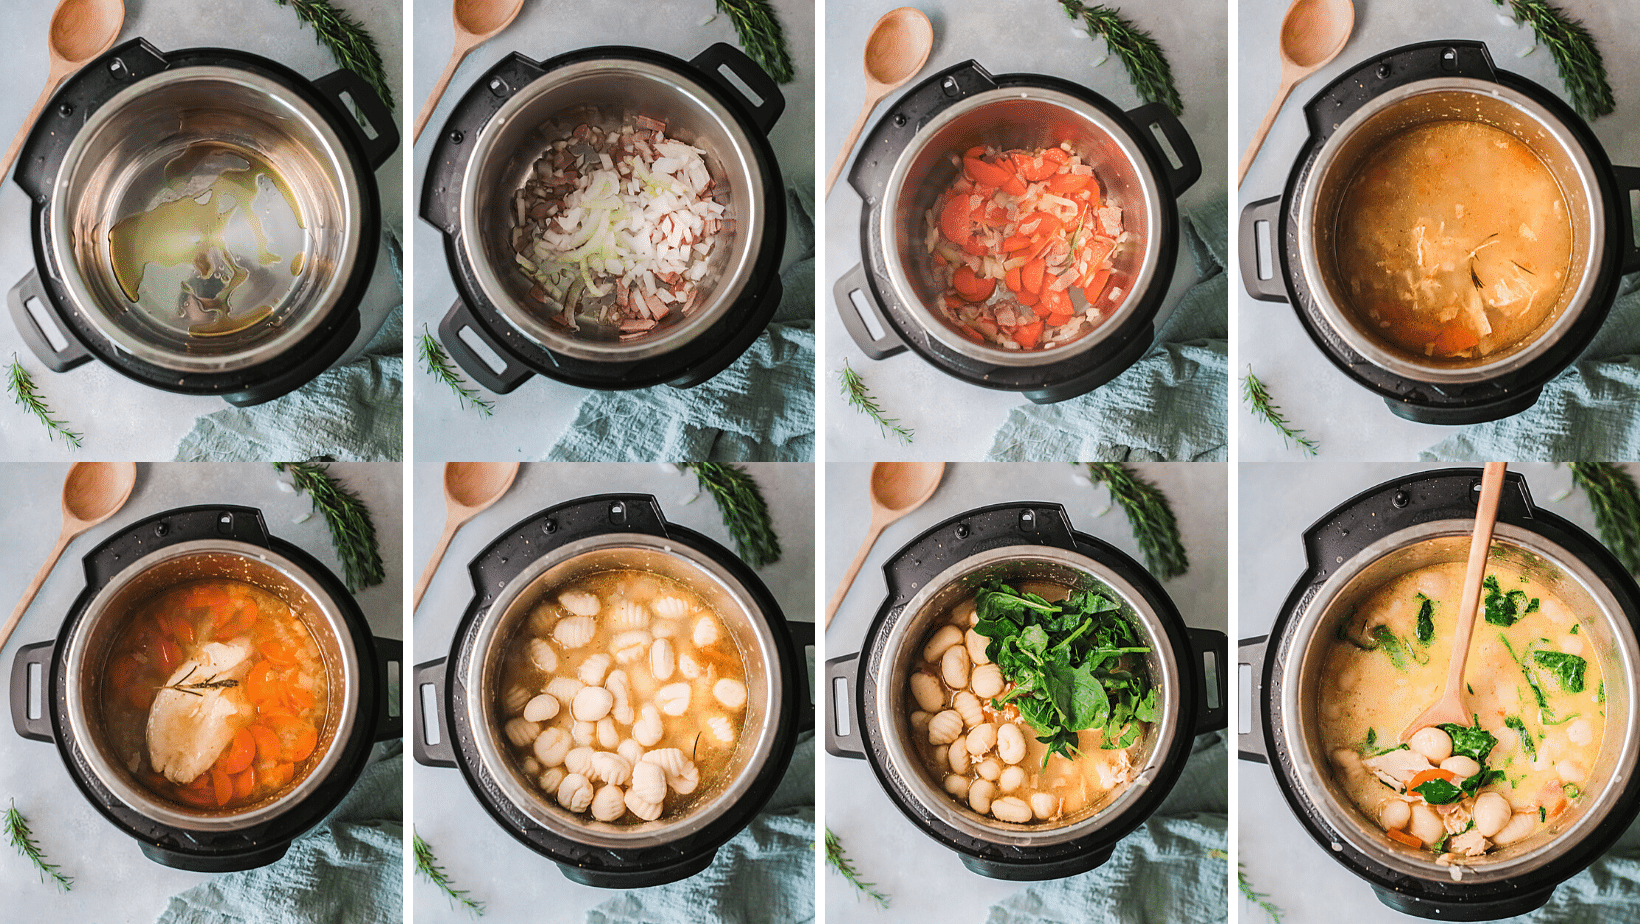 Instant Pot Chicken Gnocchi Cooking Instructions. Bring the restaurant home with my Copycat Olive Garden Instant Pot Chicken Gnocchi Soup. Better than the restaurant, this deliciously easy to make creamy soup goes perfectly with fresh-baked breadsticks.